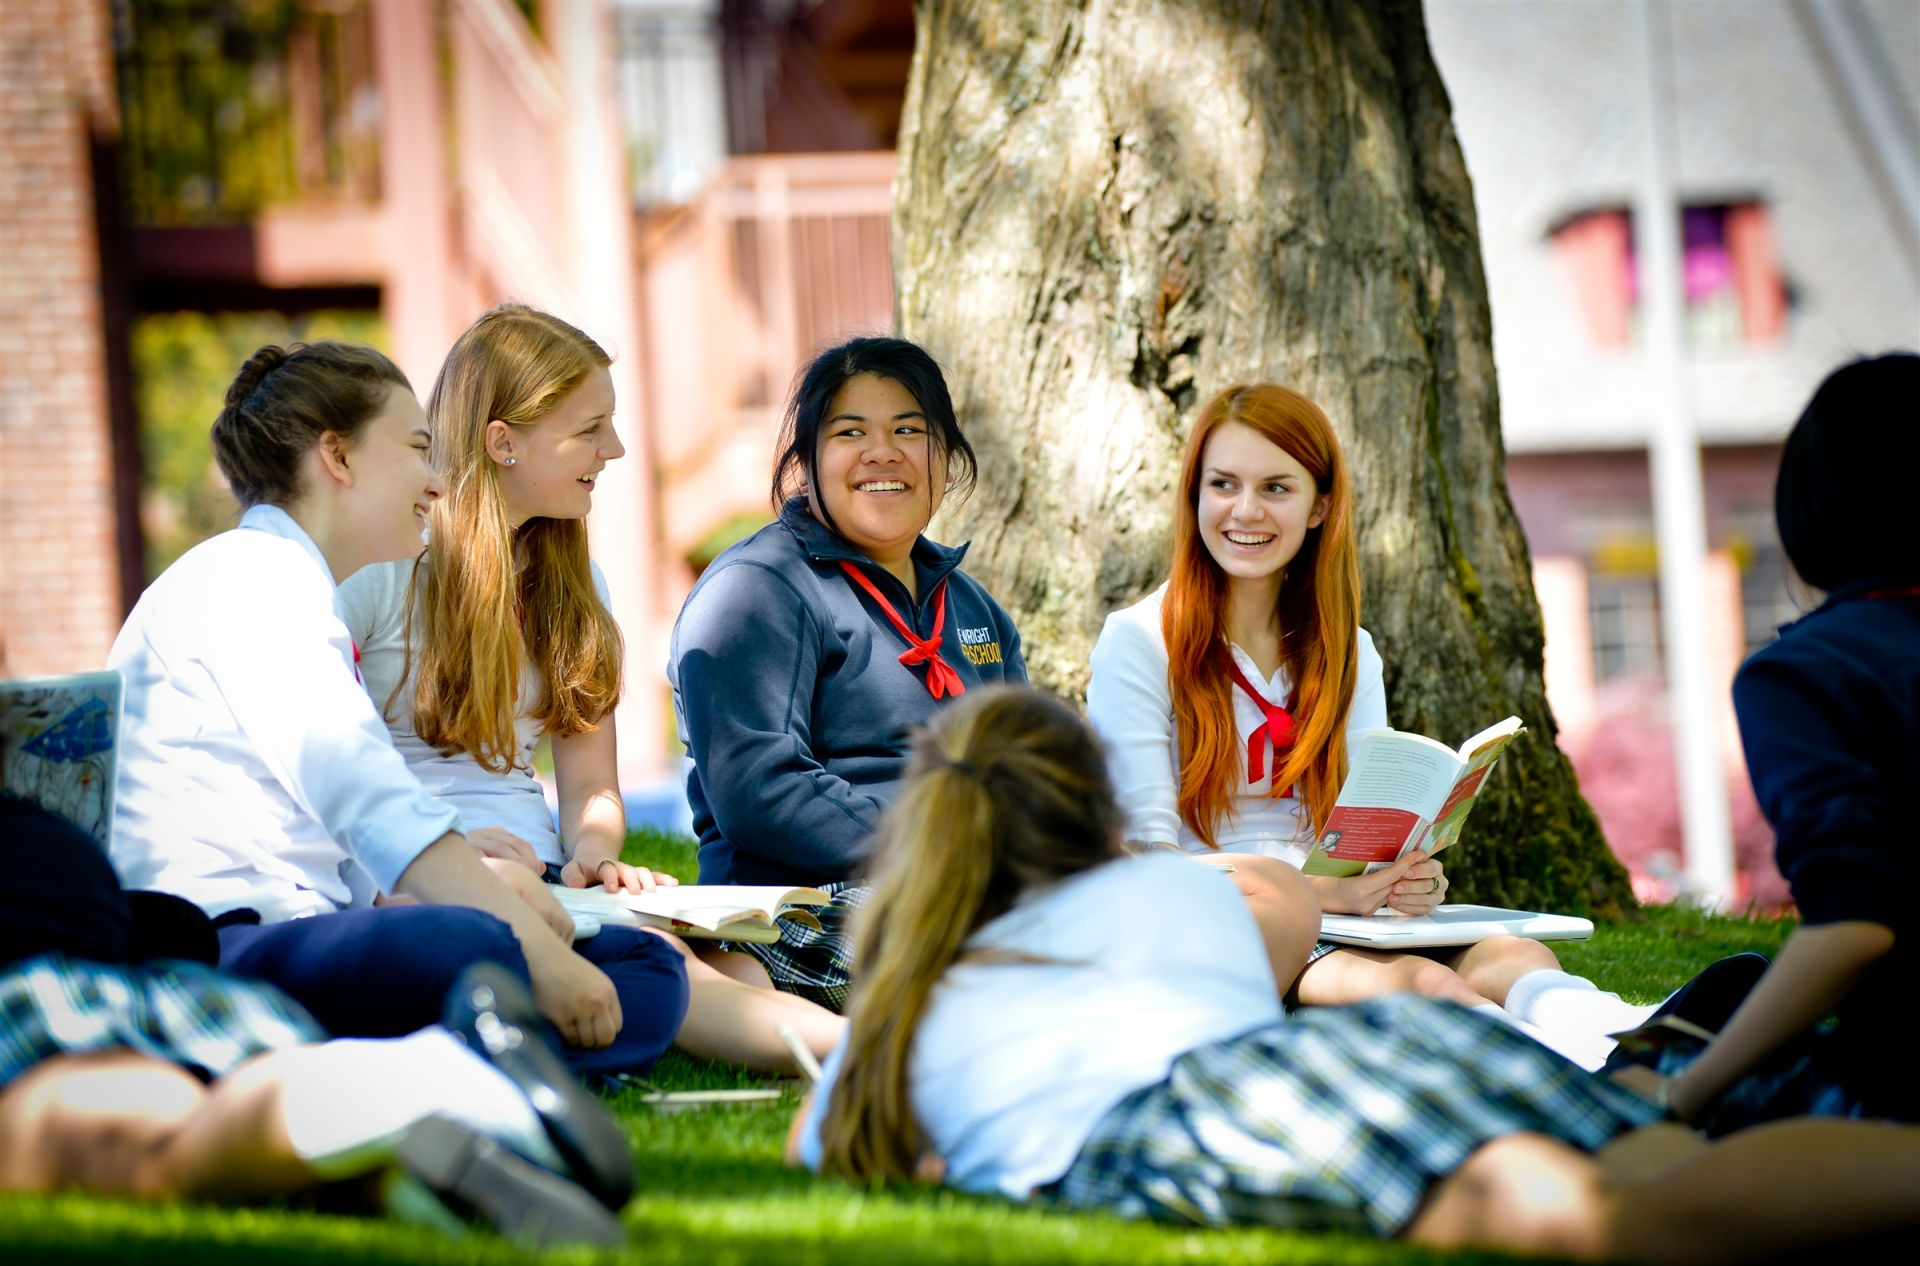 Annie Wright's campus provides many spaces for outdoor learning.